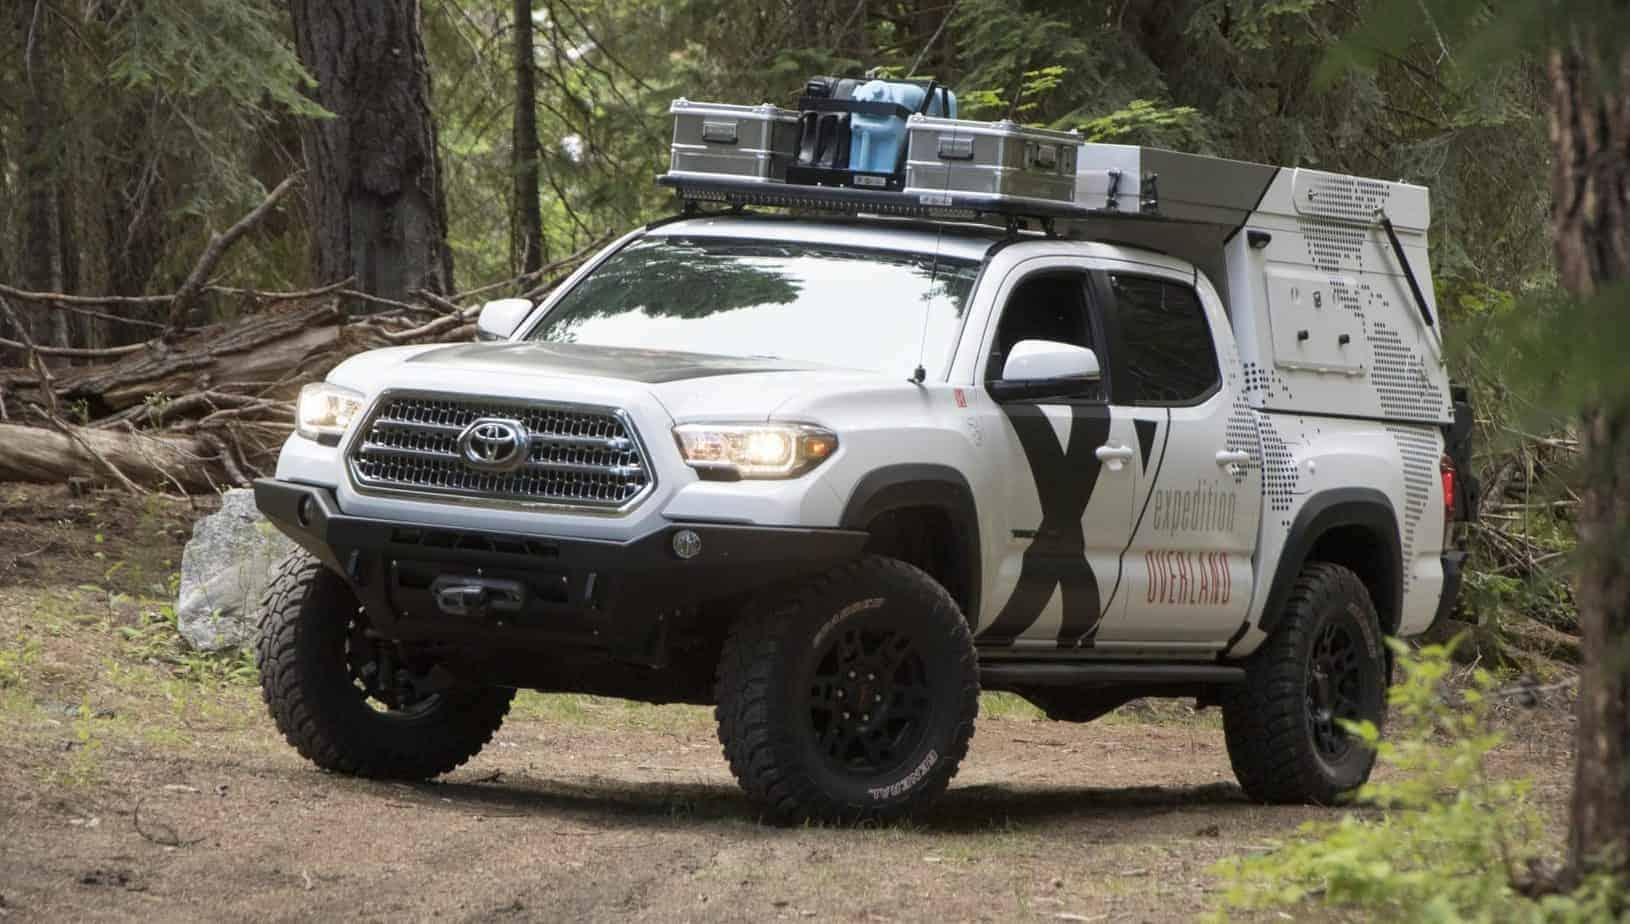 Featured Vehicle: Expedition Overland's Toyota Tacoma